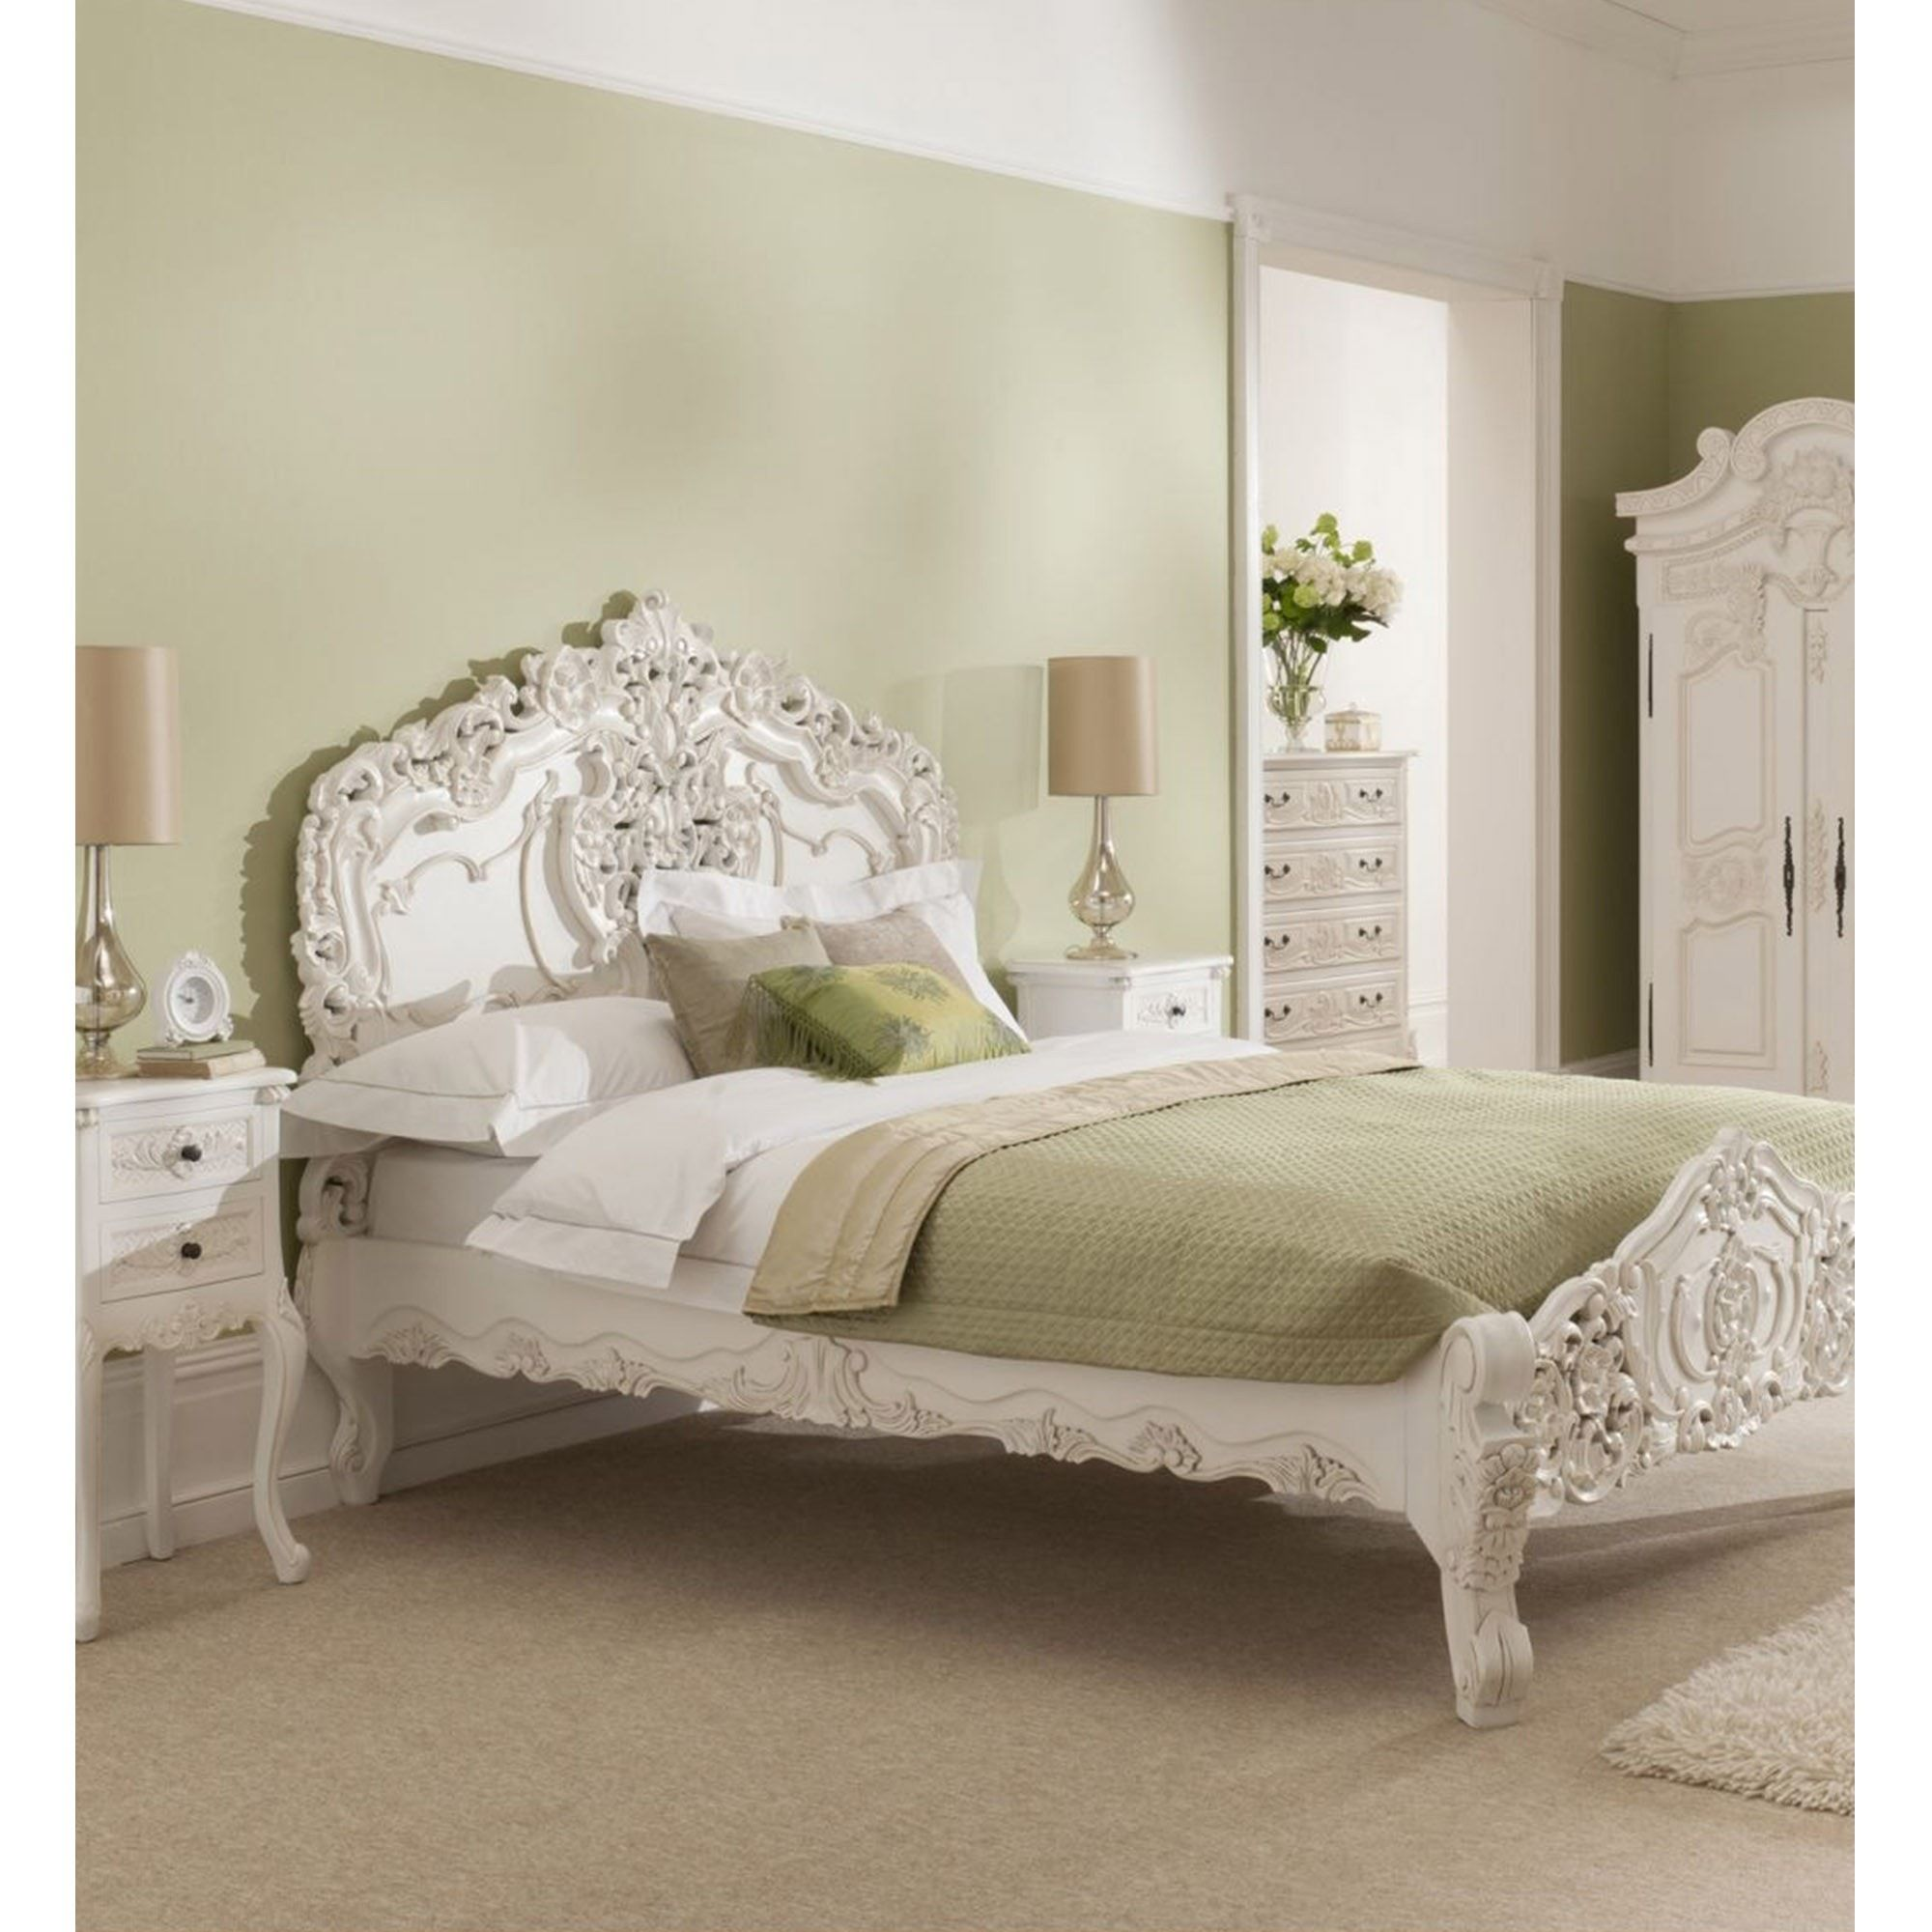 French Rococo Style Bed French style bedroom, French